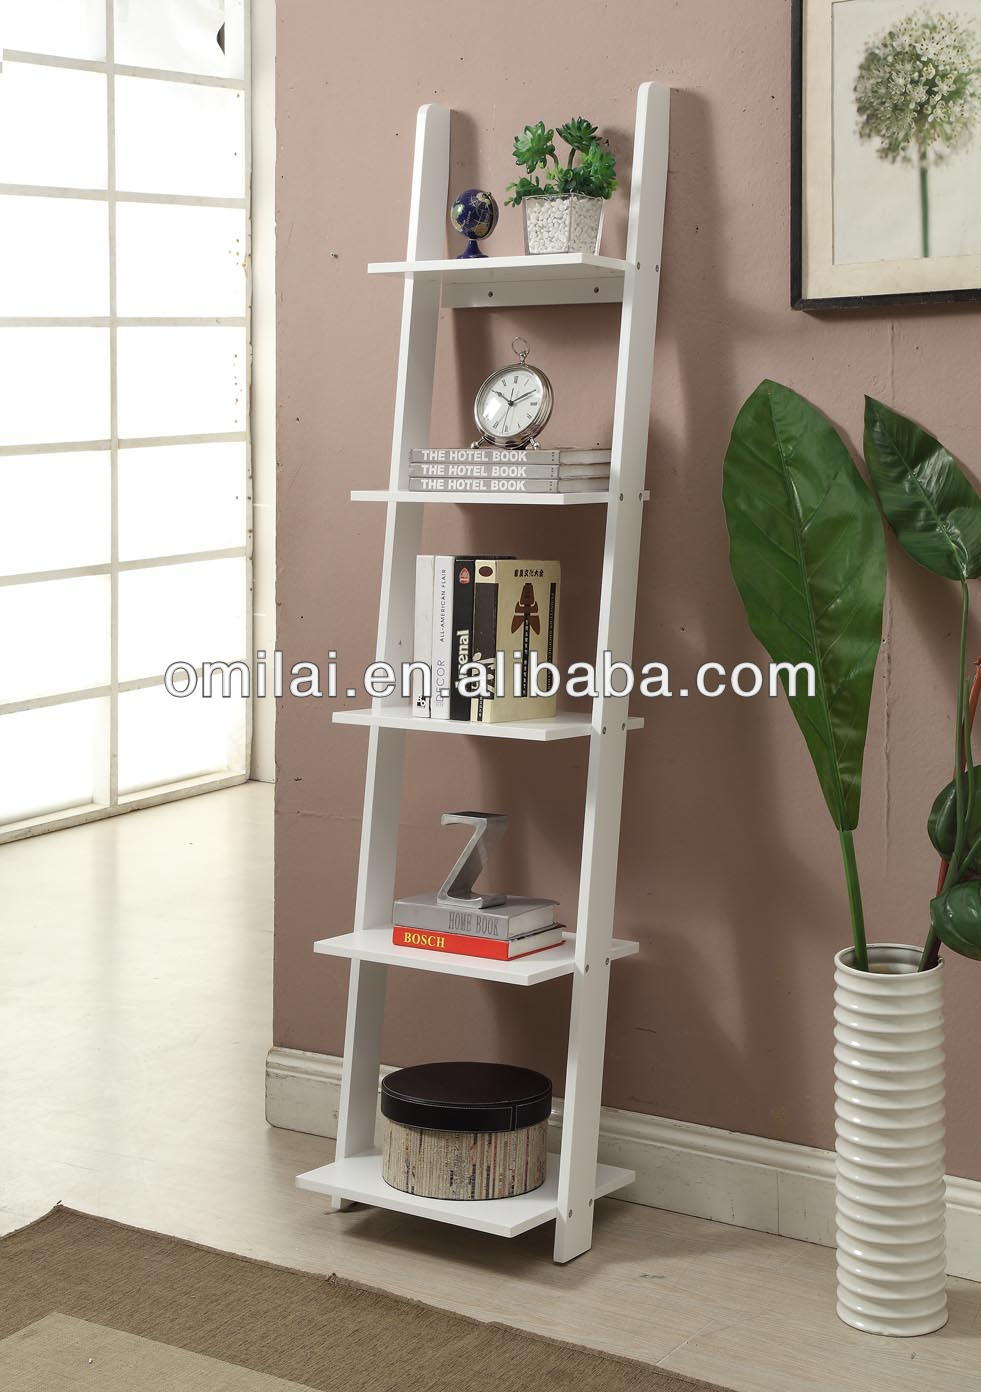 https://sc02.alicdn.com/kf/HTB1WwjBKpXXXXauXFXXq6xXFXXXb/MDF-Narrow-bookshelf-decorative-ladders-in-living.jpg